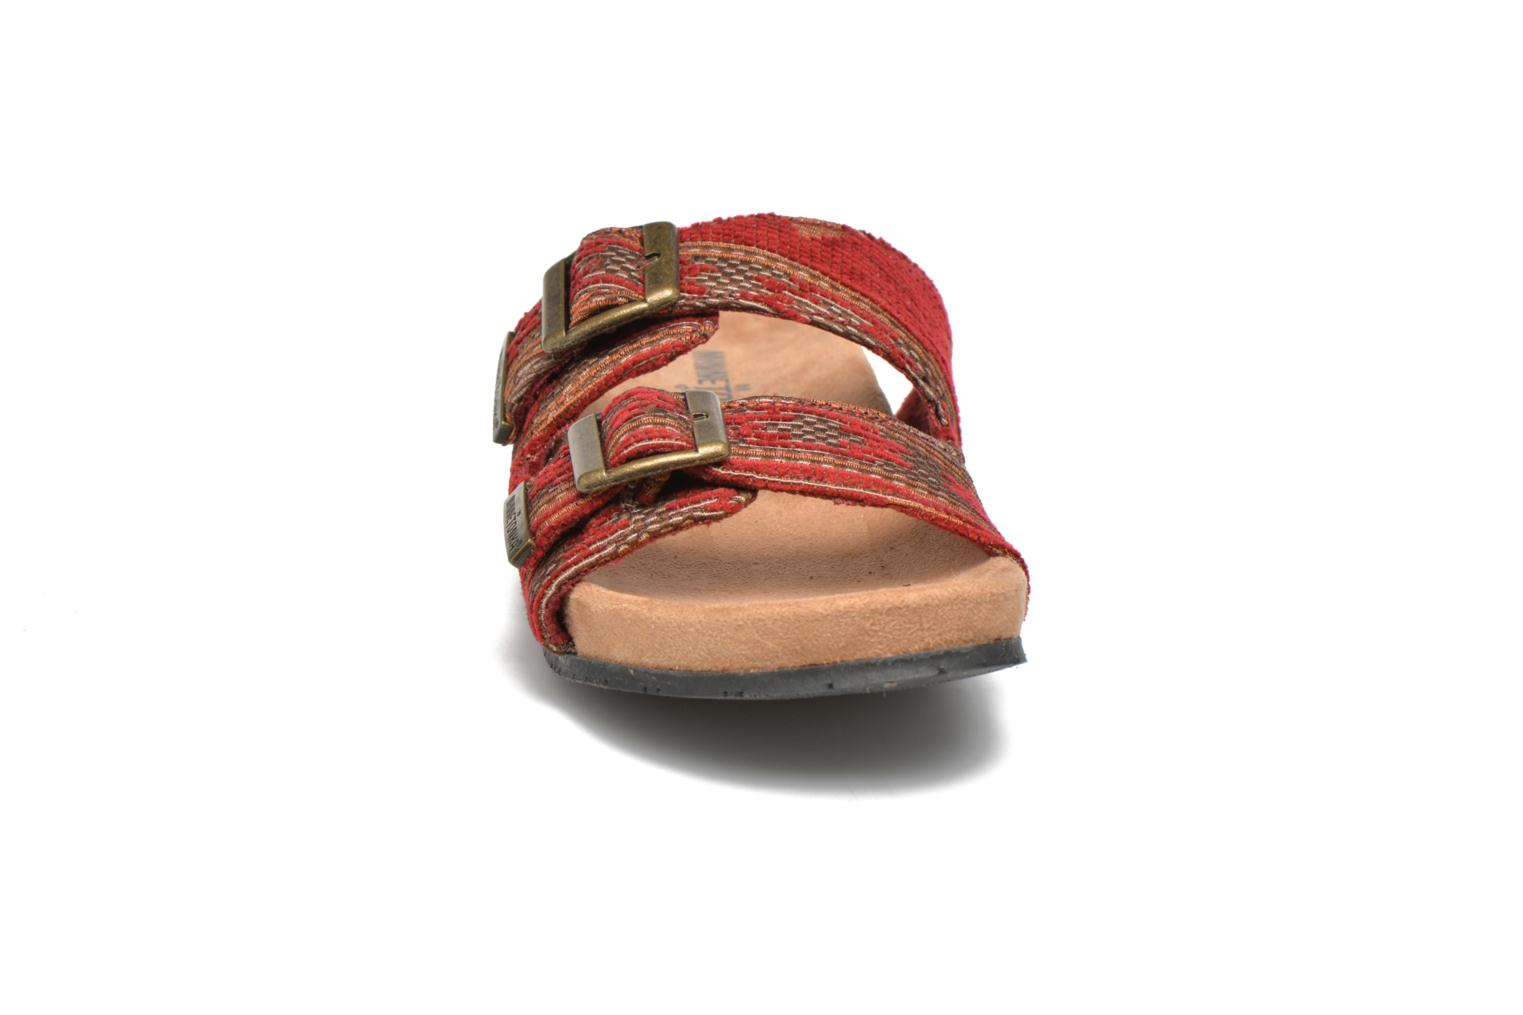 Gipsy Sandal Red Baja Fabric